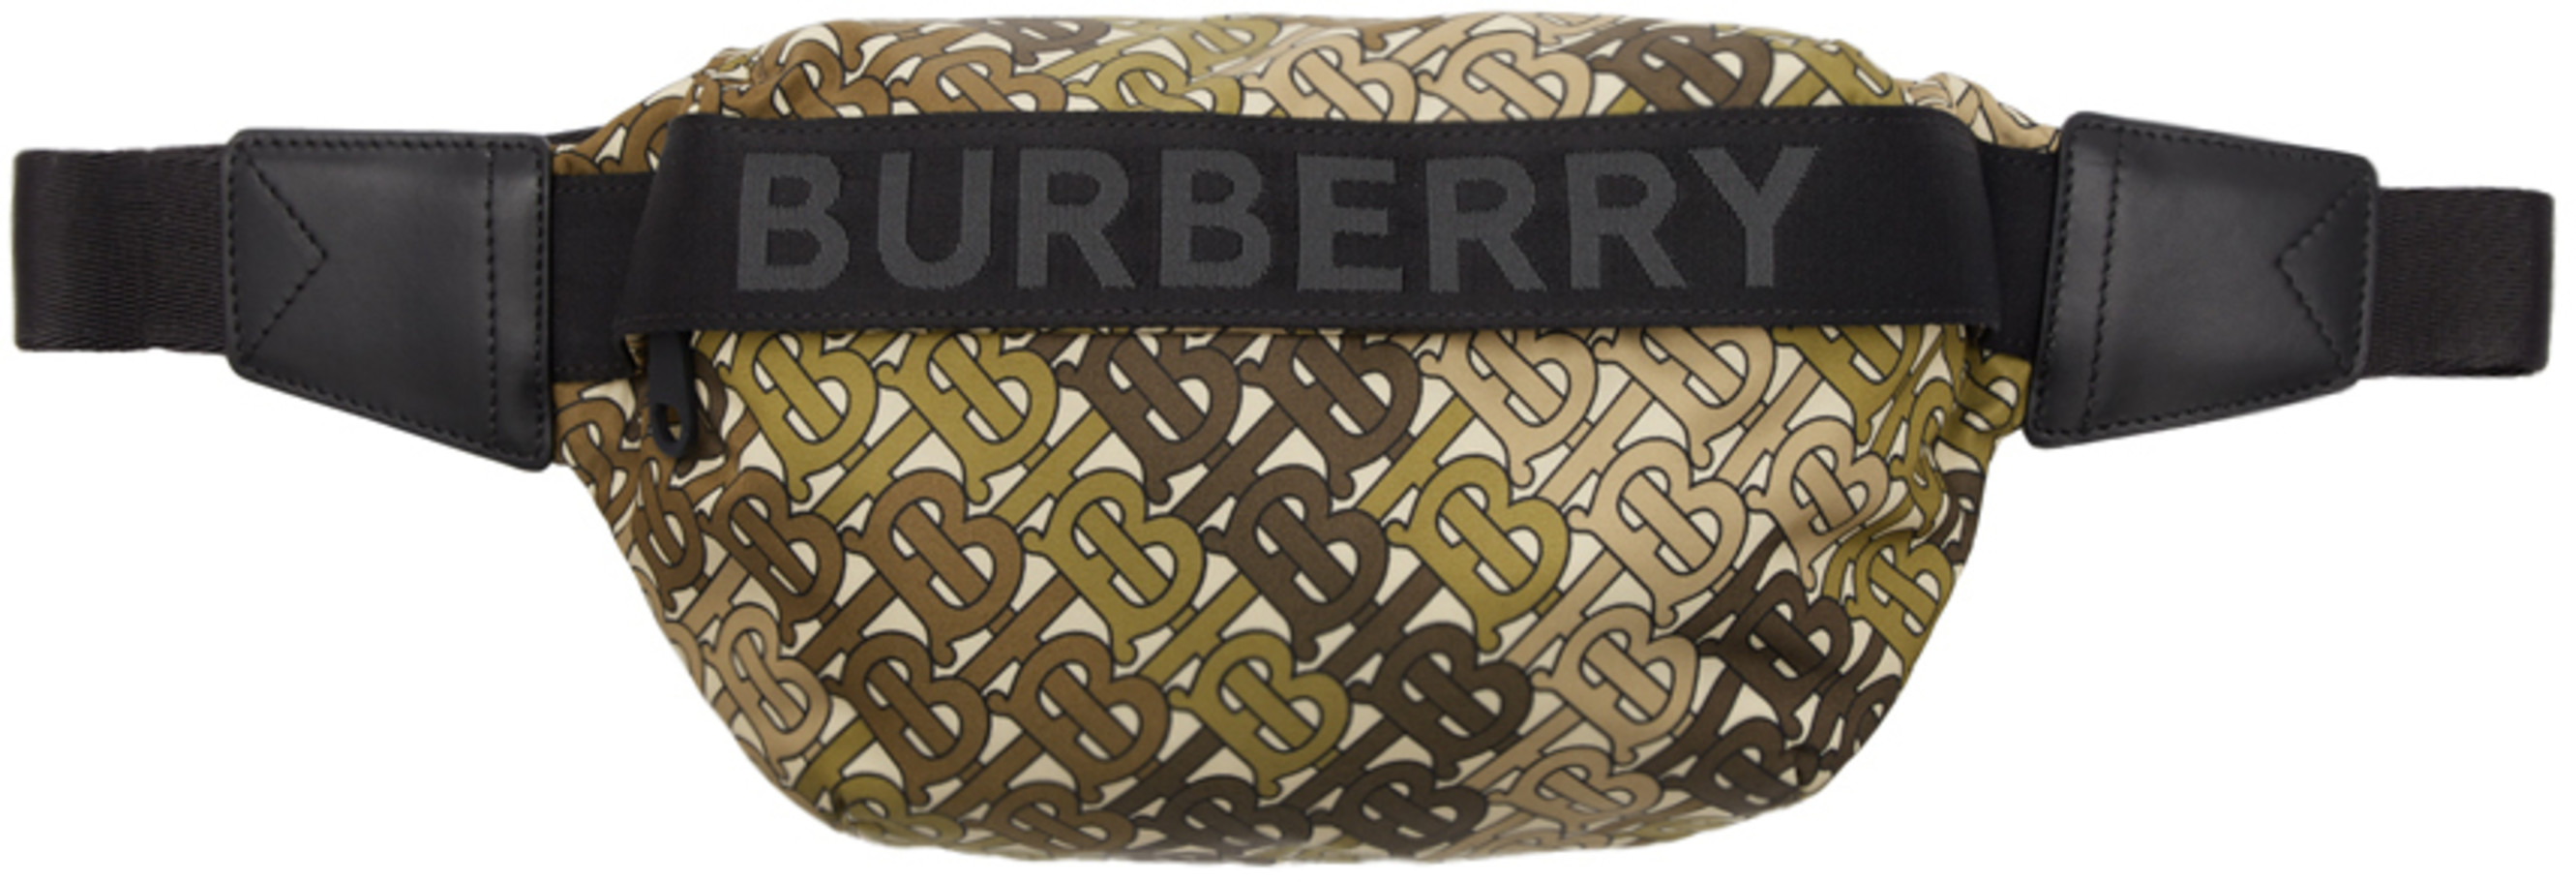 19bd612dfa70 Burberry for Women SS19 Collection